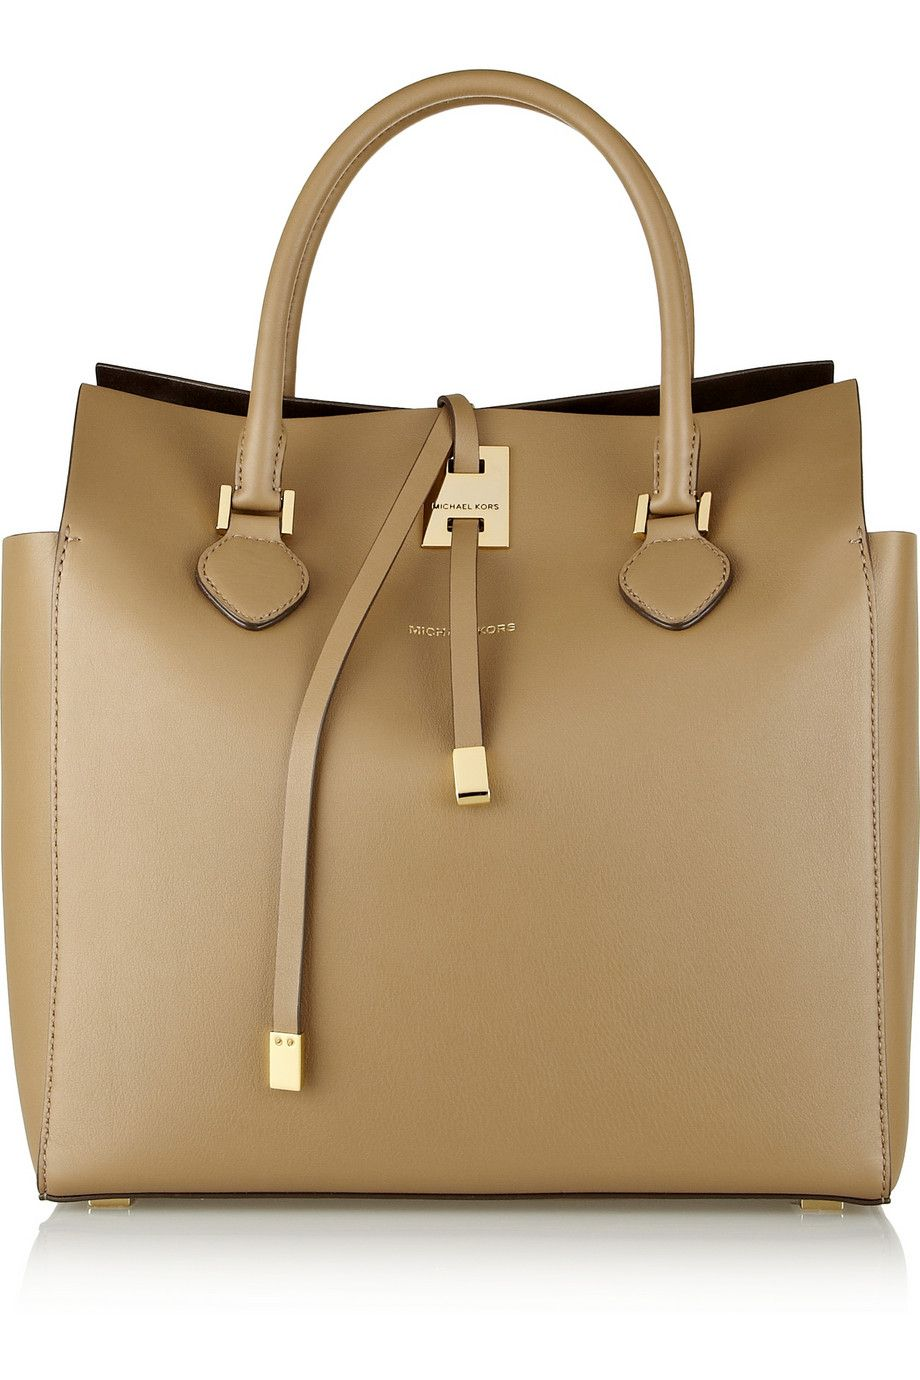 2dcbca455fbd Michael Kors | Miranda large leather tote...Love the color! | my ...